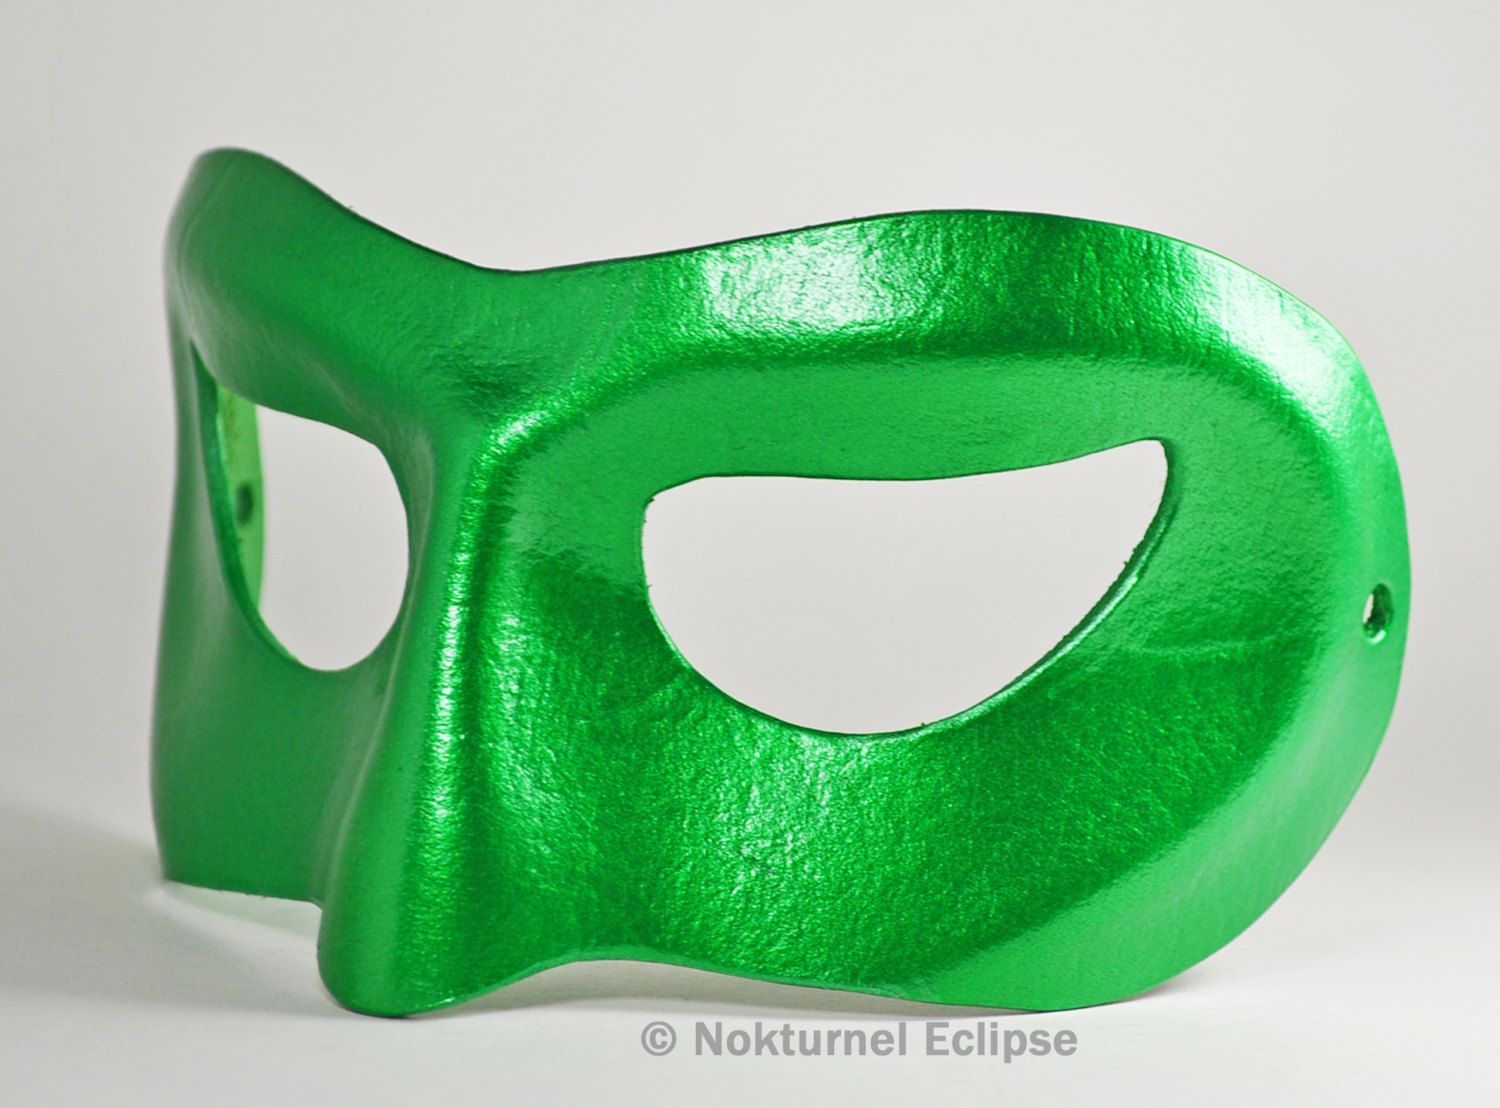 Green Lantern Leather Mask Justice League Cosplay Dawn of Justice Superhero Masquerade DC Comics Halloween - Available In Any Basic Color 4HcnKXJa